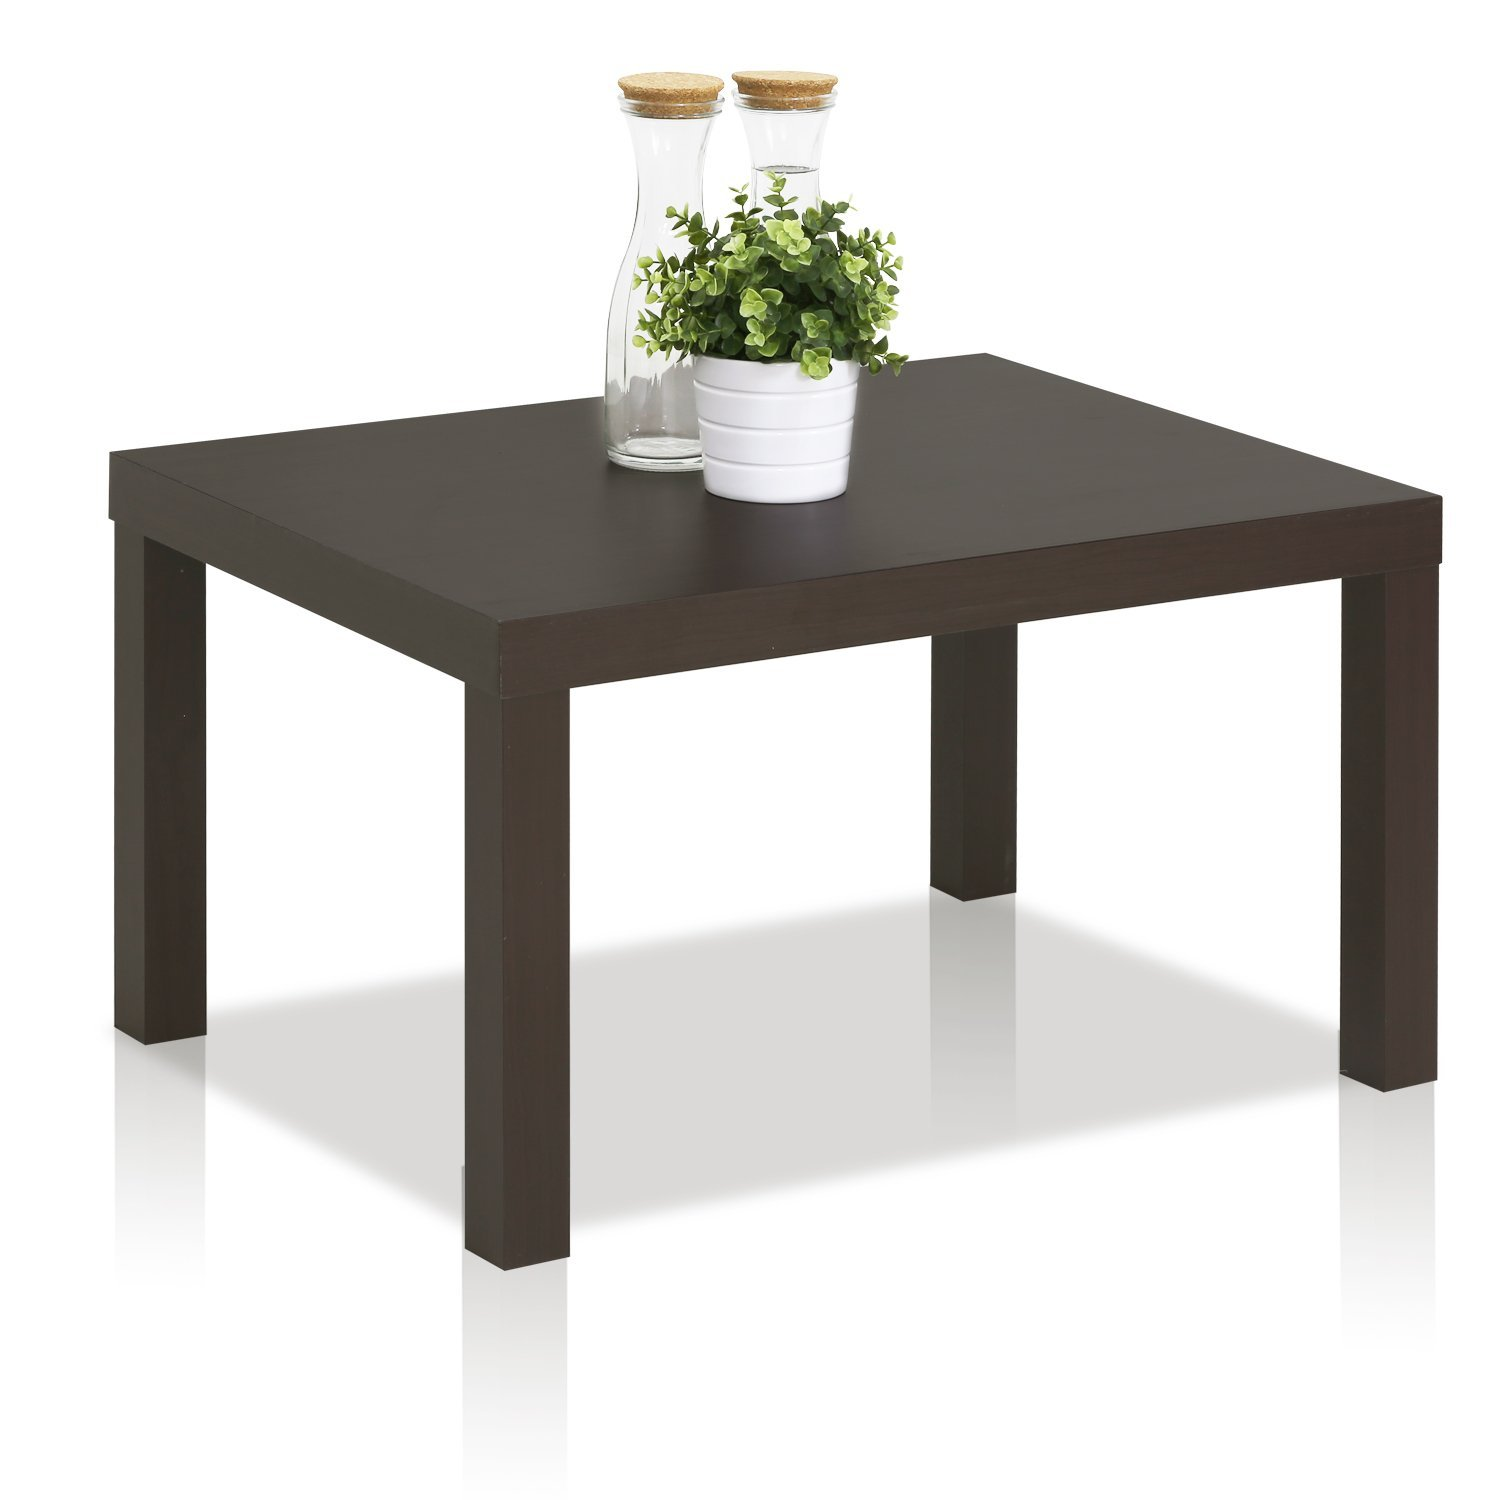 Cheap Coffee Tables The Ultimate Guide To Coffee Tables Under 100